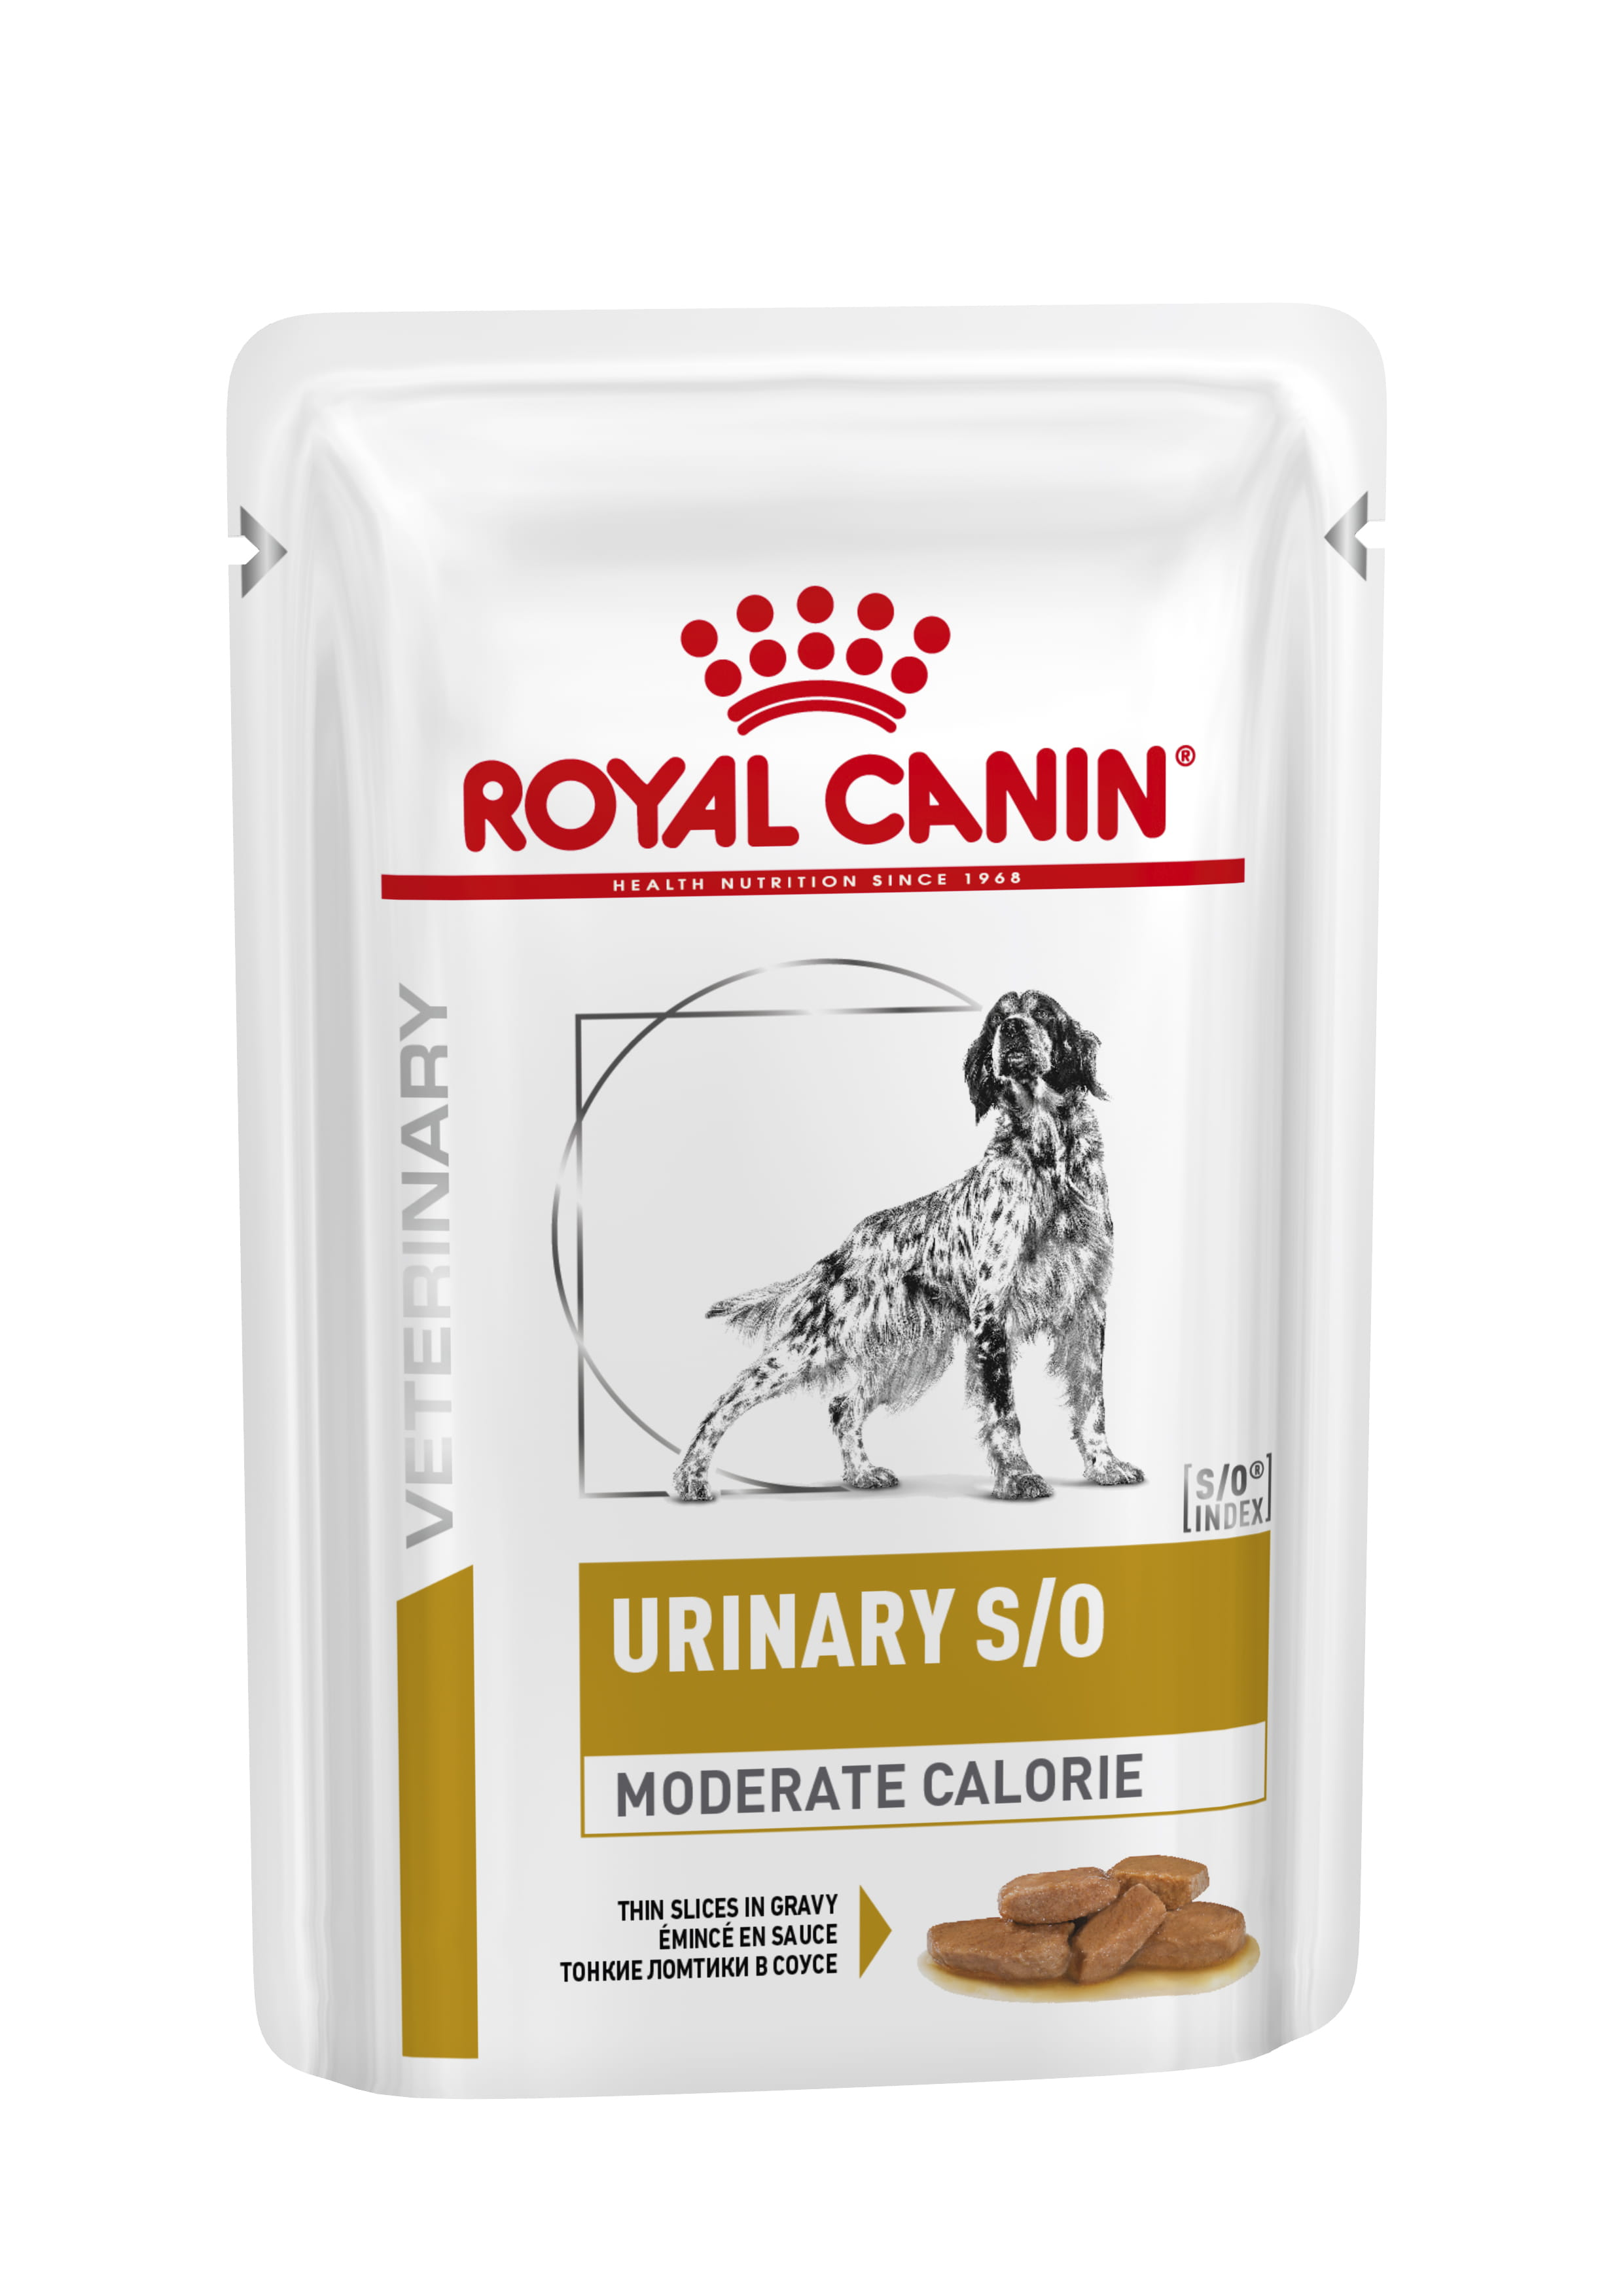 Canine Urinary S/O Moderate Calorie Thin Slices in Gravy